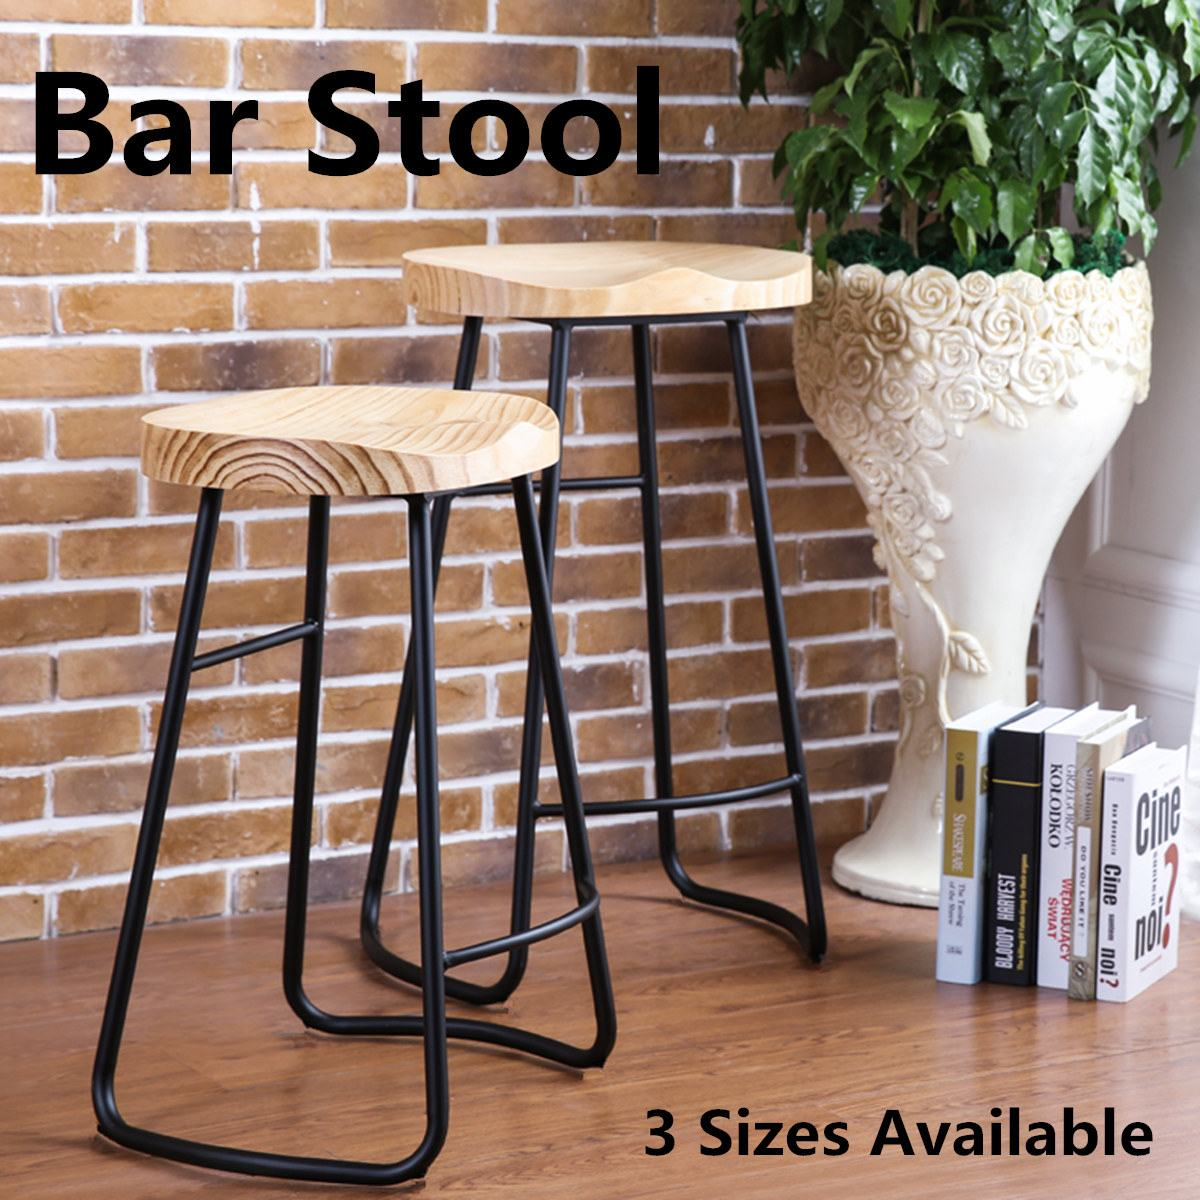 Bar Furniture 45/60/75cm Vintage Industrial Bar Stool Retro Counter Seat Retro Pub Kitchen Metal Wood Chair Outdoor Bar Furniture Decoration Warm And Windproof